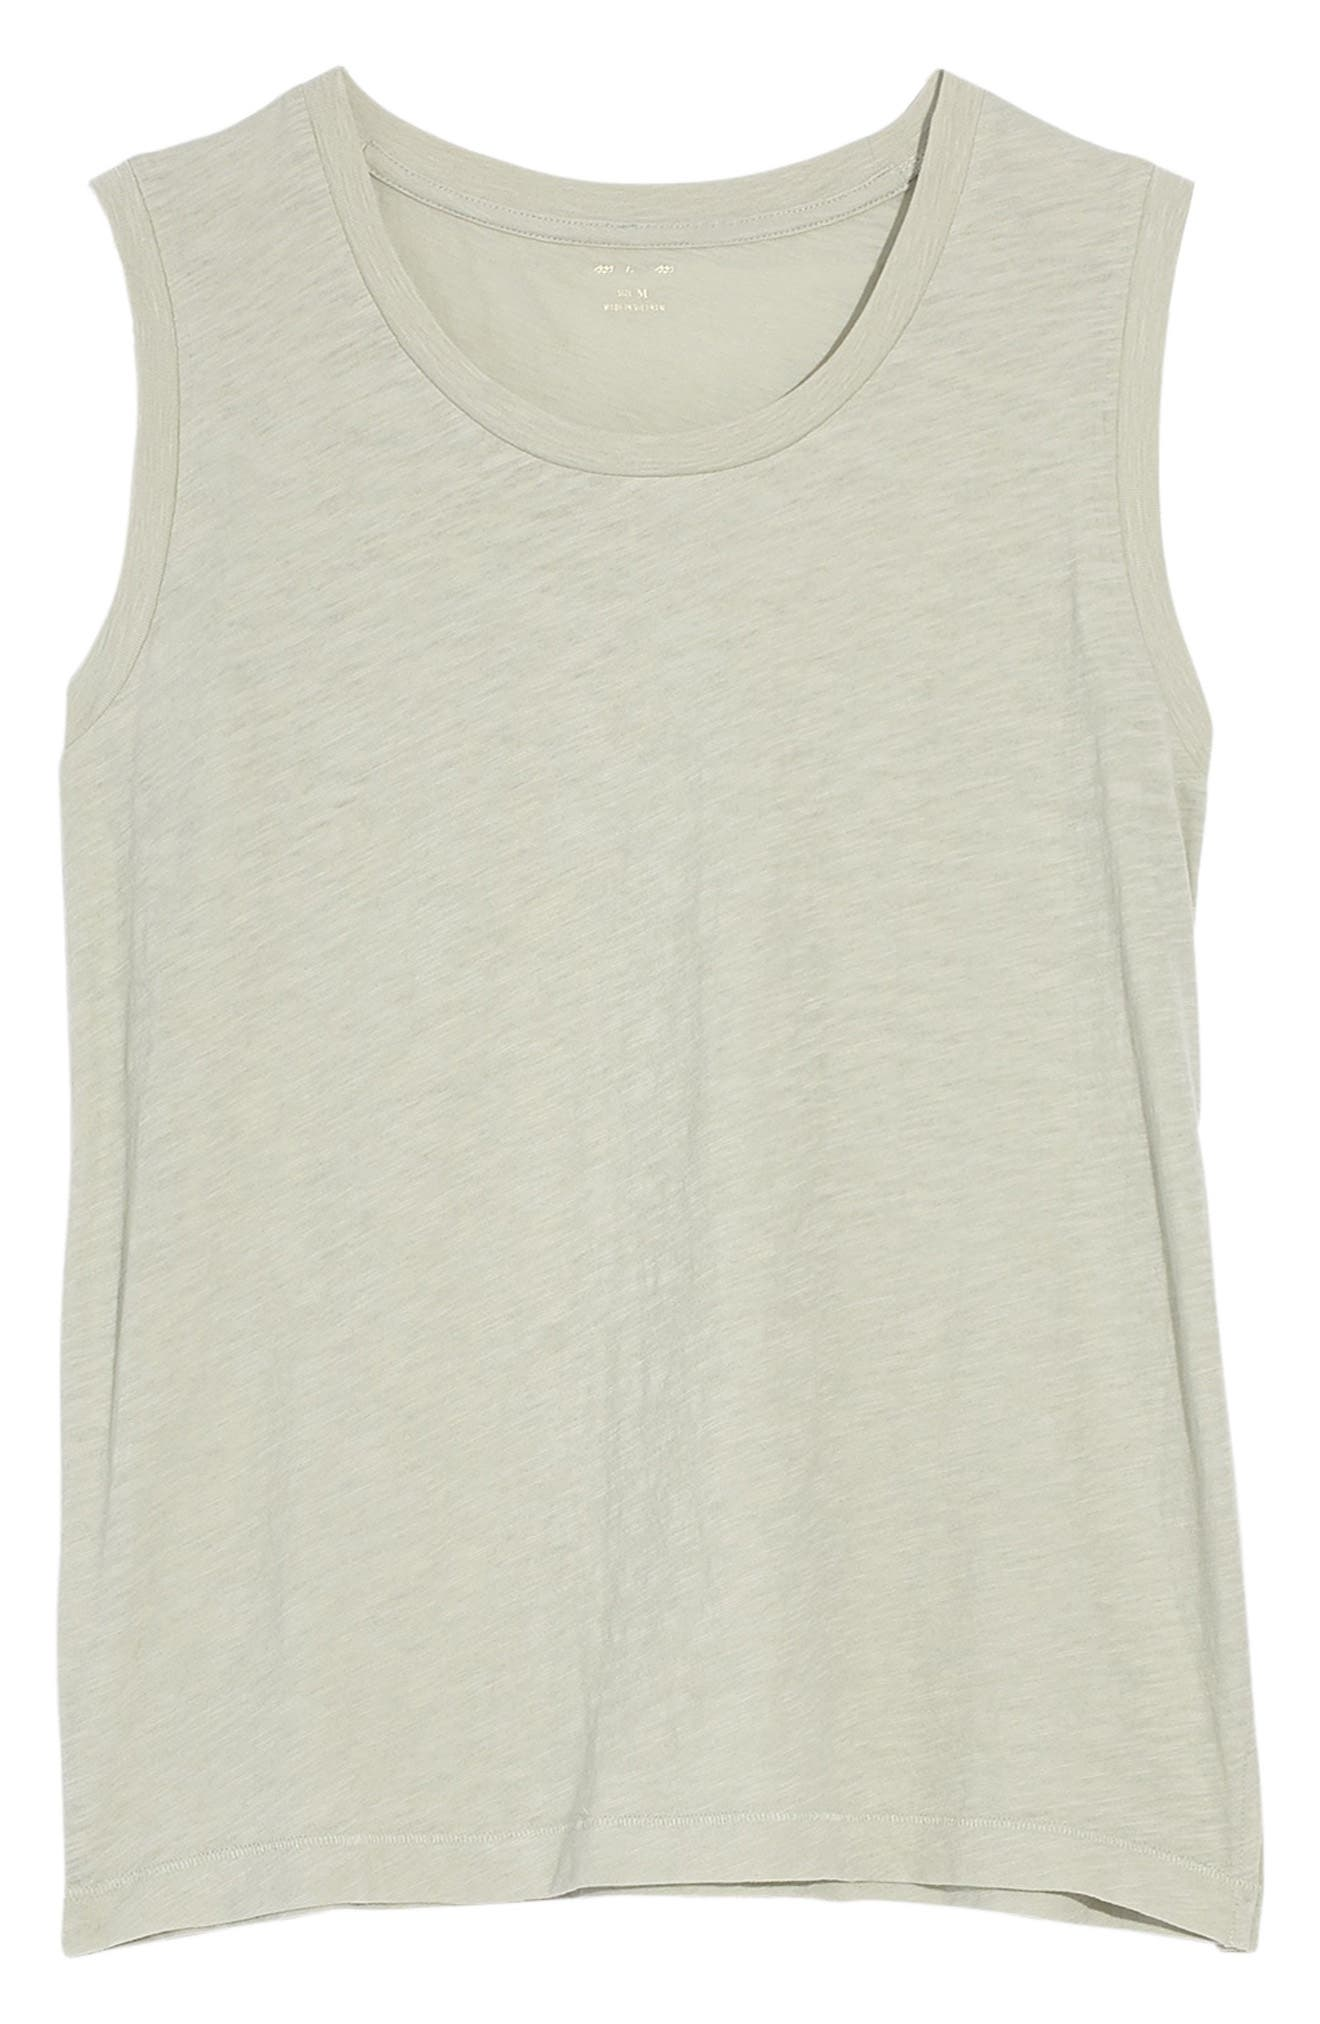 MADEWELL, Whisper Cotton Crewneck Muscle Tank, Main thumbnail 1, color, SUNFADED SAGE